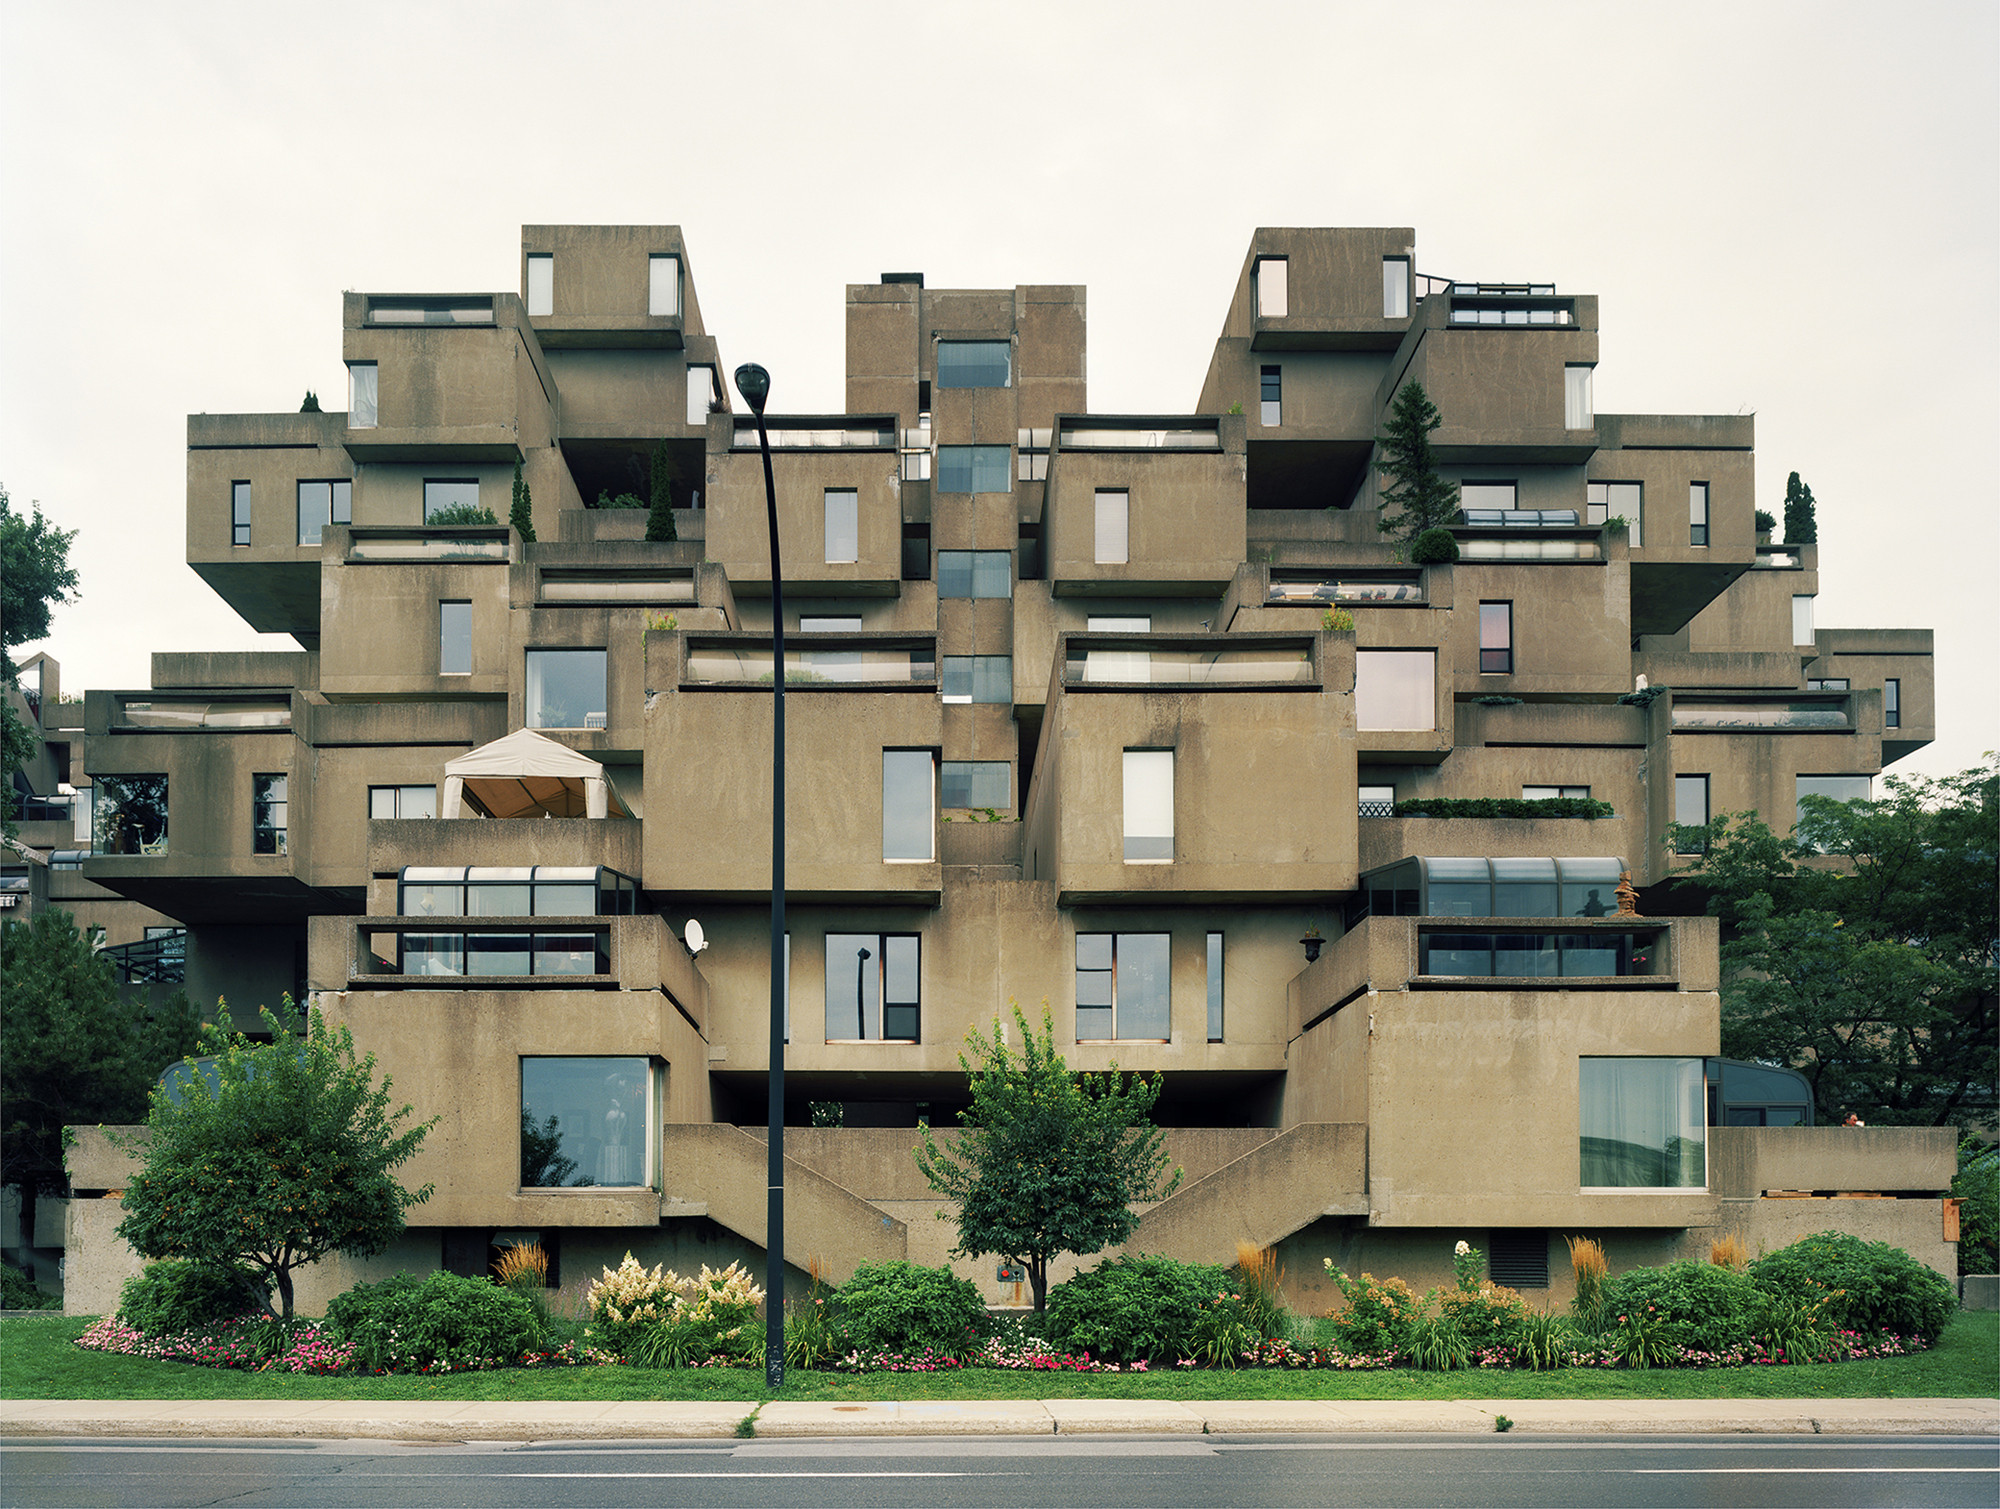 AD Clics: Habitat 67 / Safdie Architects | ArchDaily on nature house designs, portico entrance designs, harvest house designs, shelter house designs, fish house designs, unique house designs, family house designs, hut house designs, forest house designs, independent house designs, permaculture house designs, residential entry portico interior designs, tree house designs, ikea house designs, wildlife house designs, pole houses designs, light house designs, hunting house designs, muji house designs, birdhouse house designs,